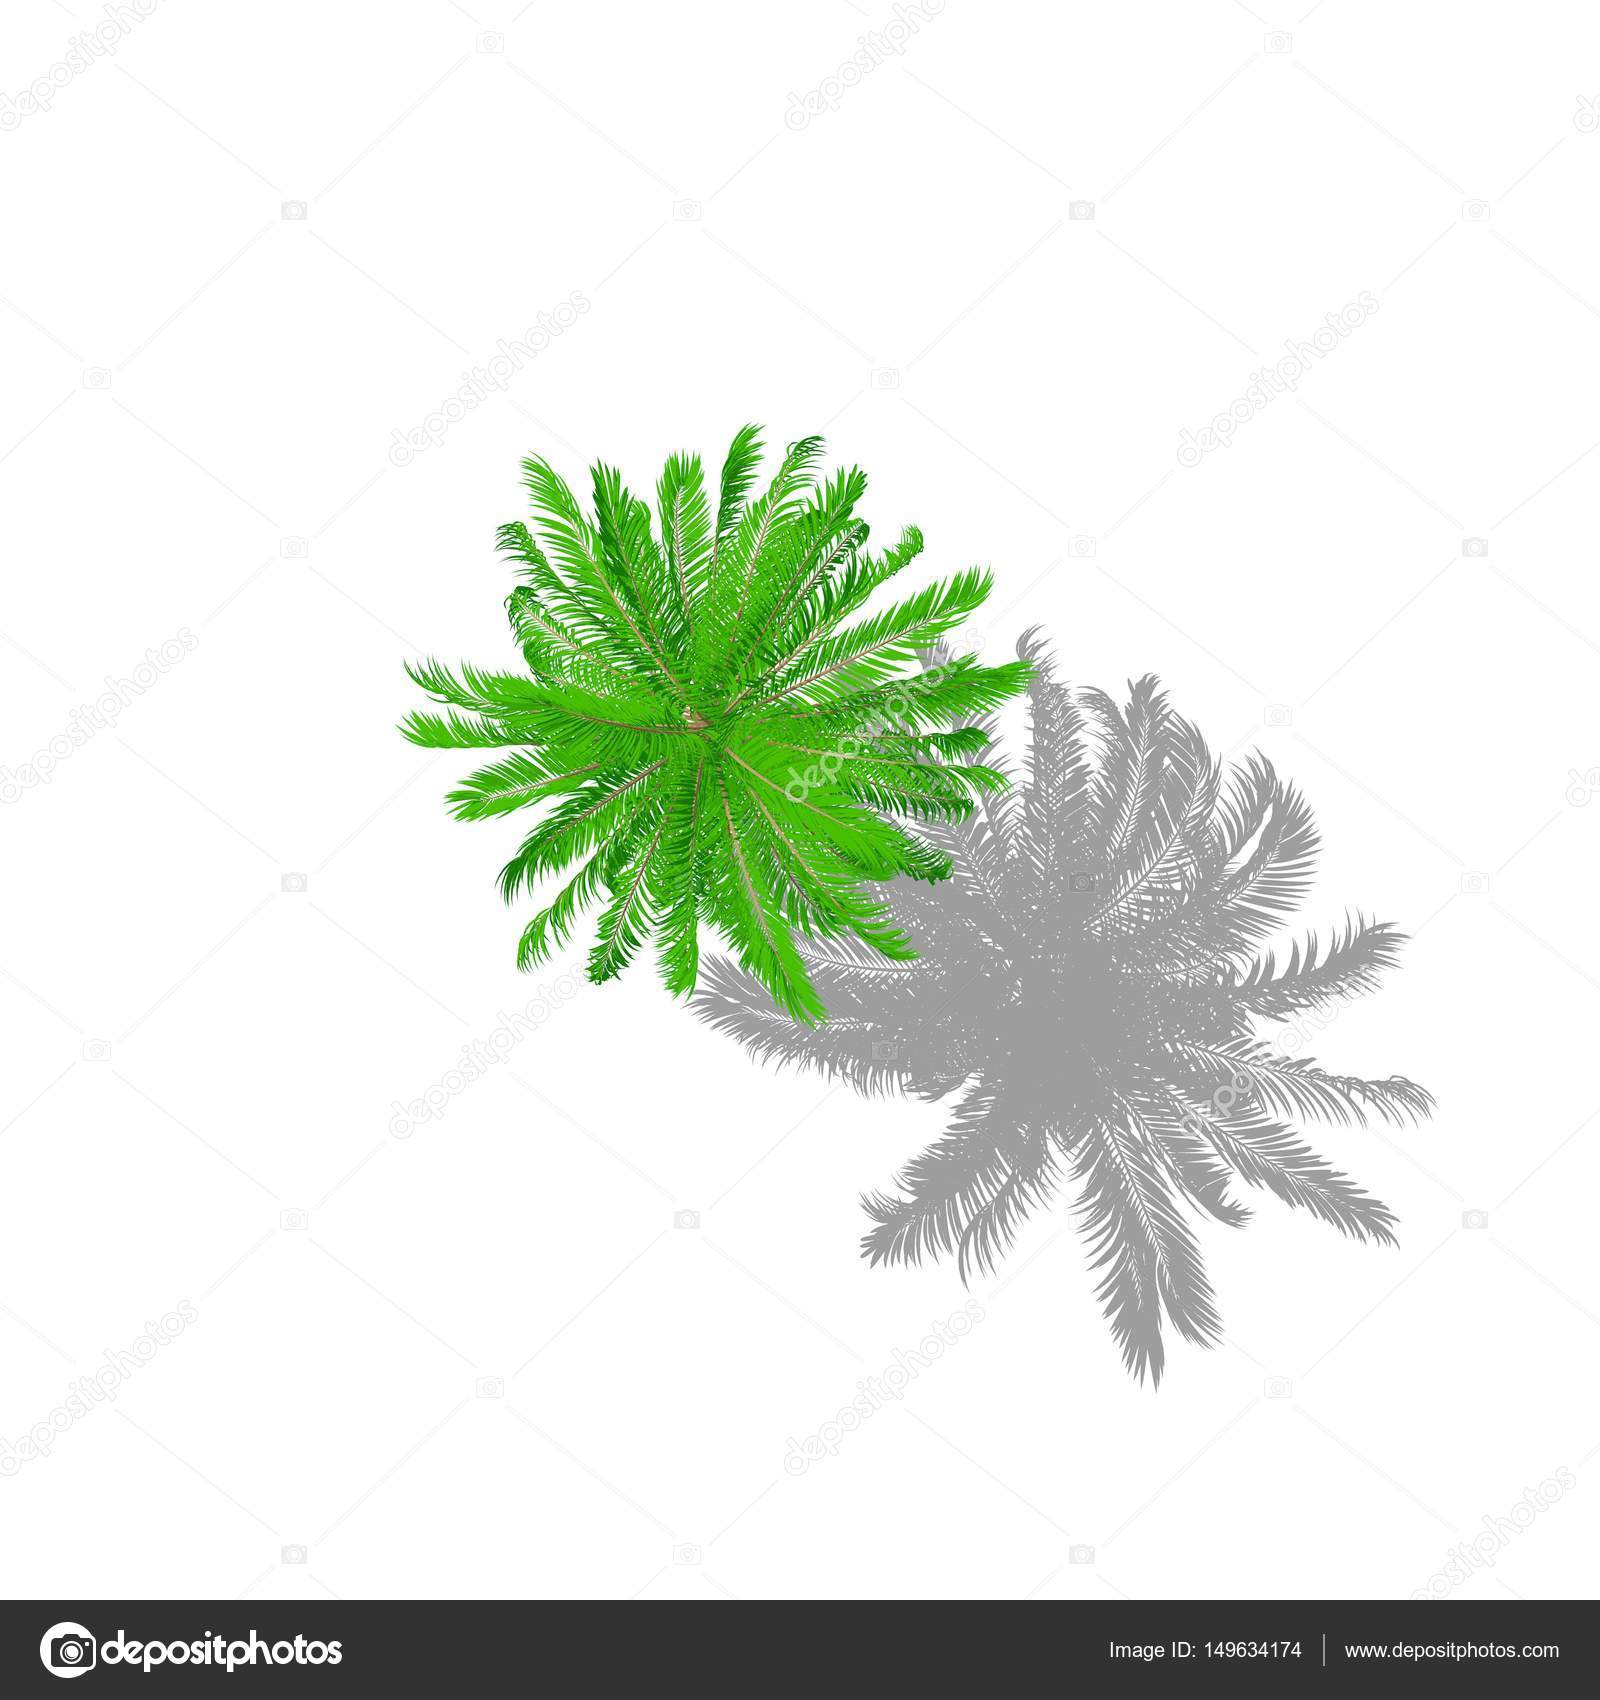 Palm Tree Isolated On White Background Cartoon Style Top View Stock Photo C Eestingnef 149634174 The owner of this domain has not yet uploaded their website. https depositphotos com 149634174 stock photo palm tree isolated on white html